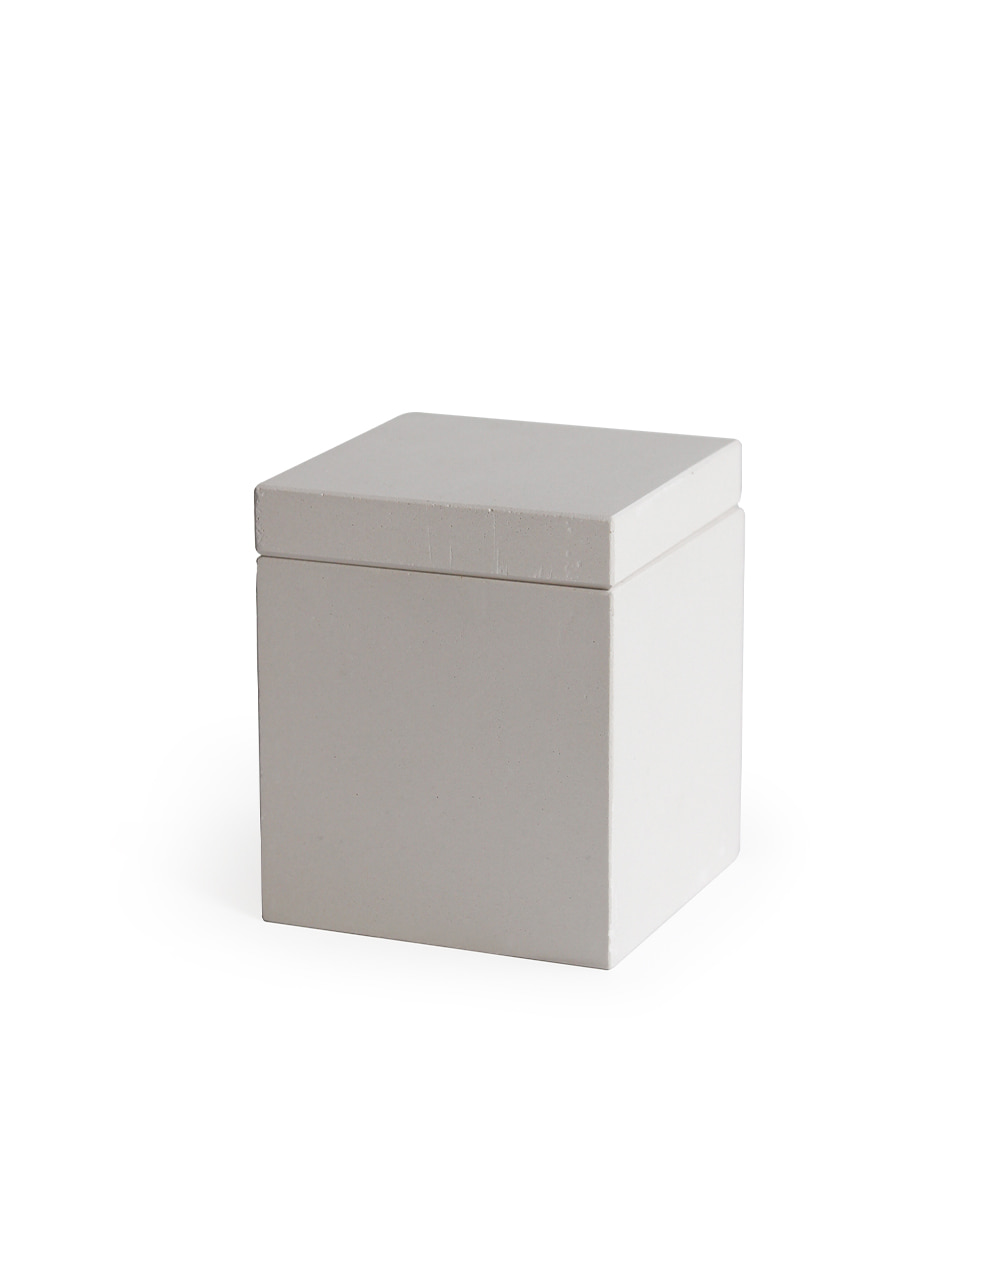 SOILFOOD CONTAINER SQUARE (2 Sizes)